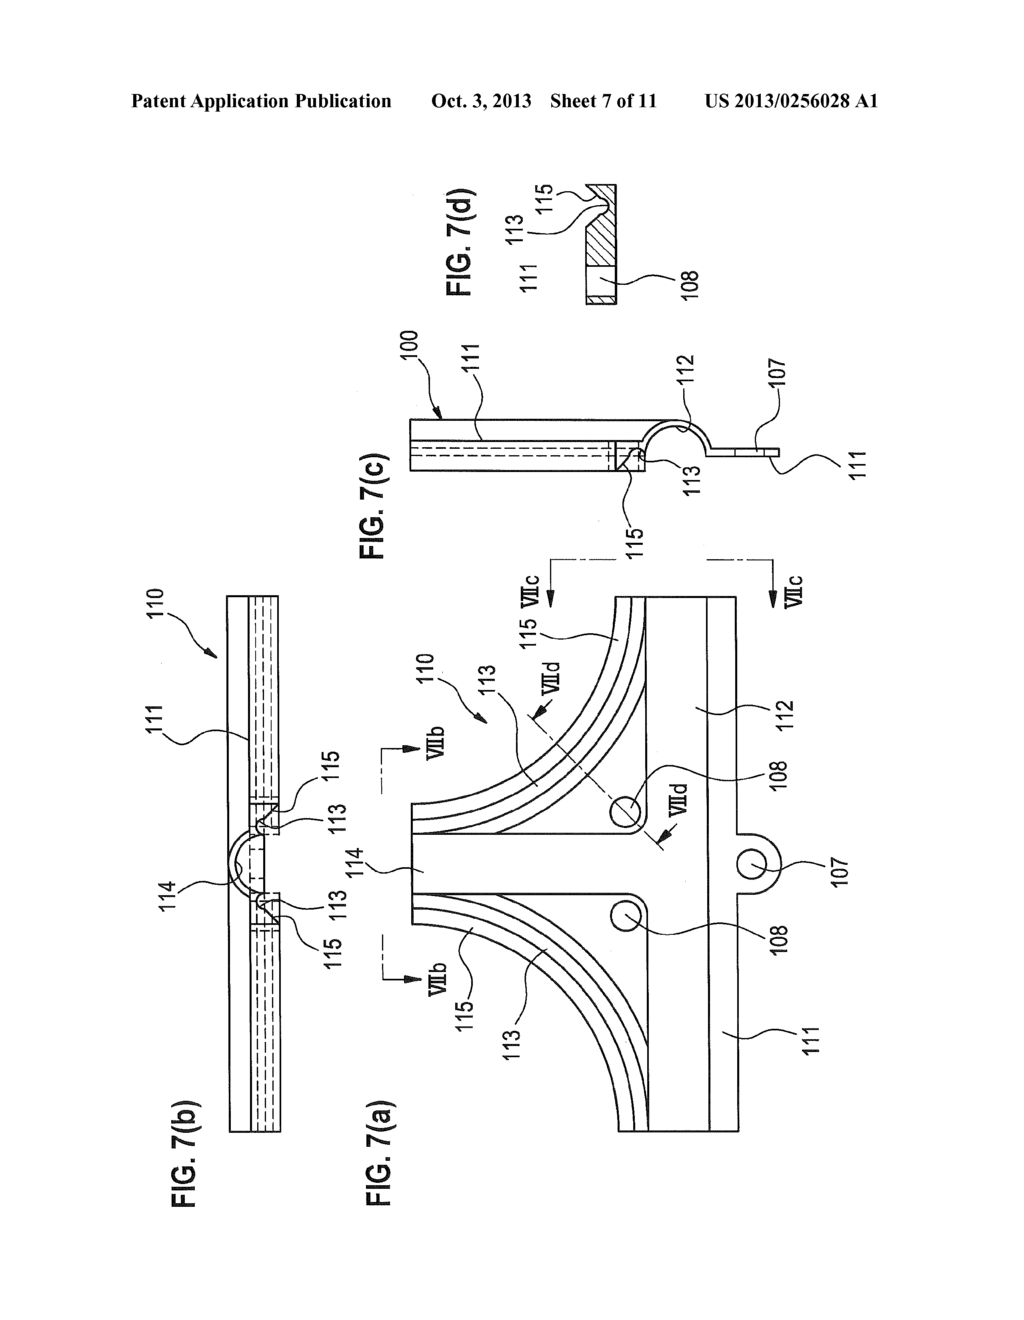 7 Way Trailer Connector Wiring Diagram Blade together with Wiring Diagram Of A 2 Pole Transfer Switch moreover Driving Lights Wiring Instructions furthermore Meyer parts lights as well 28. on 7 pole trailer wiring diagram